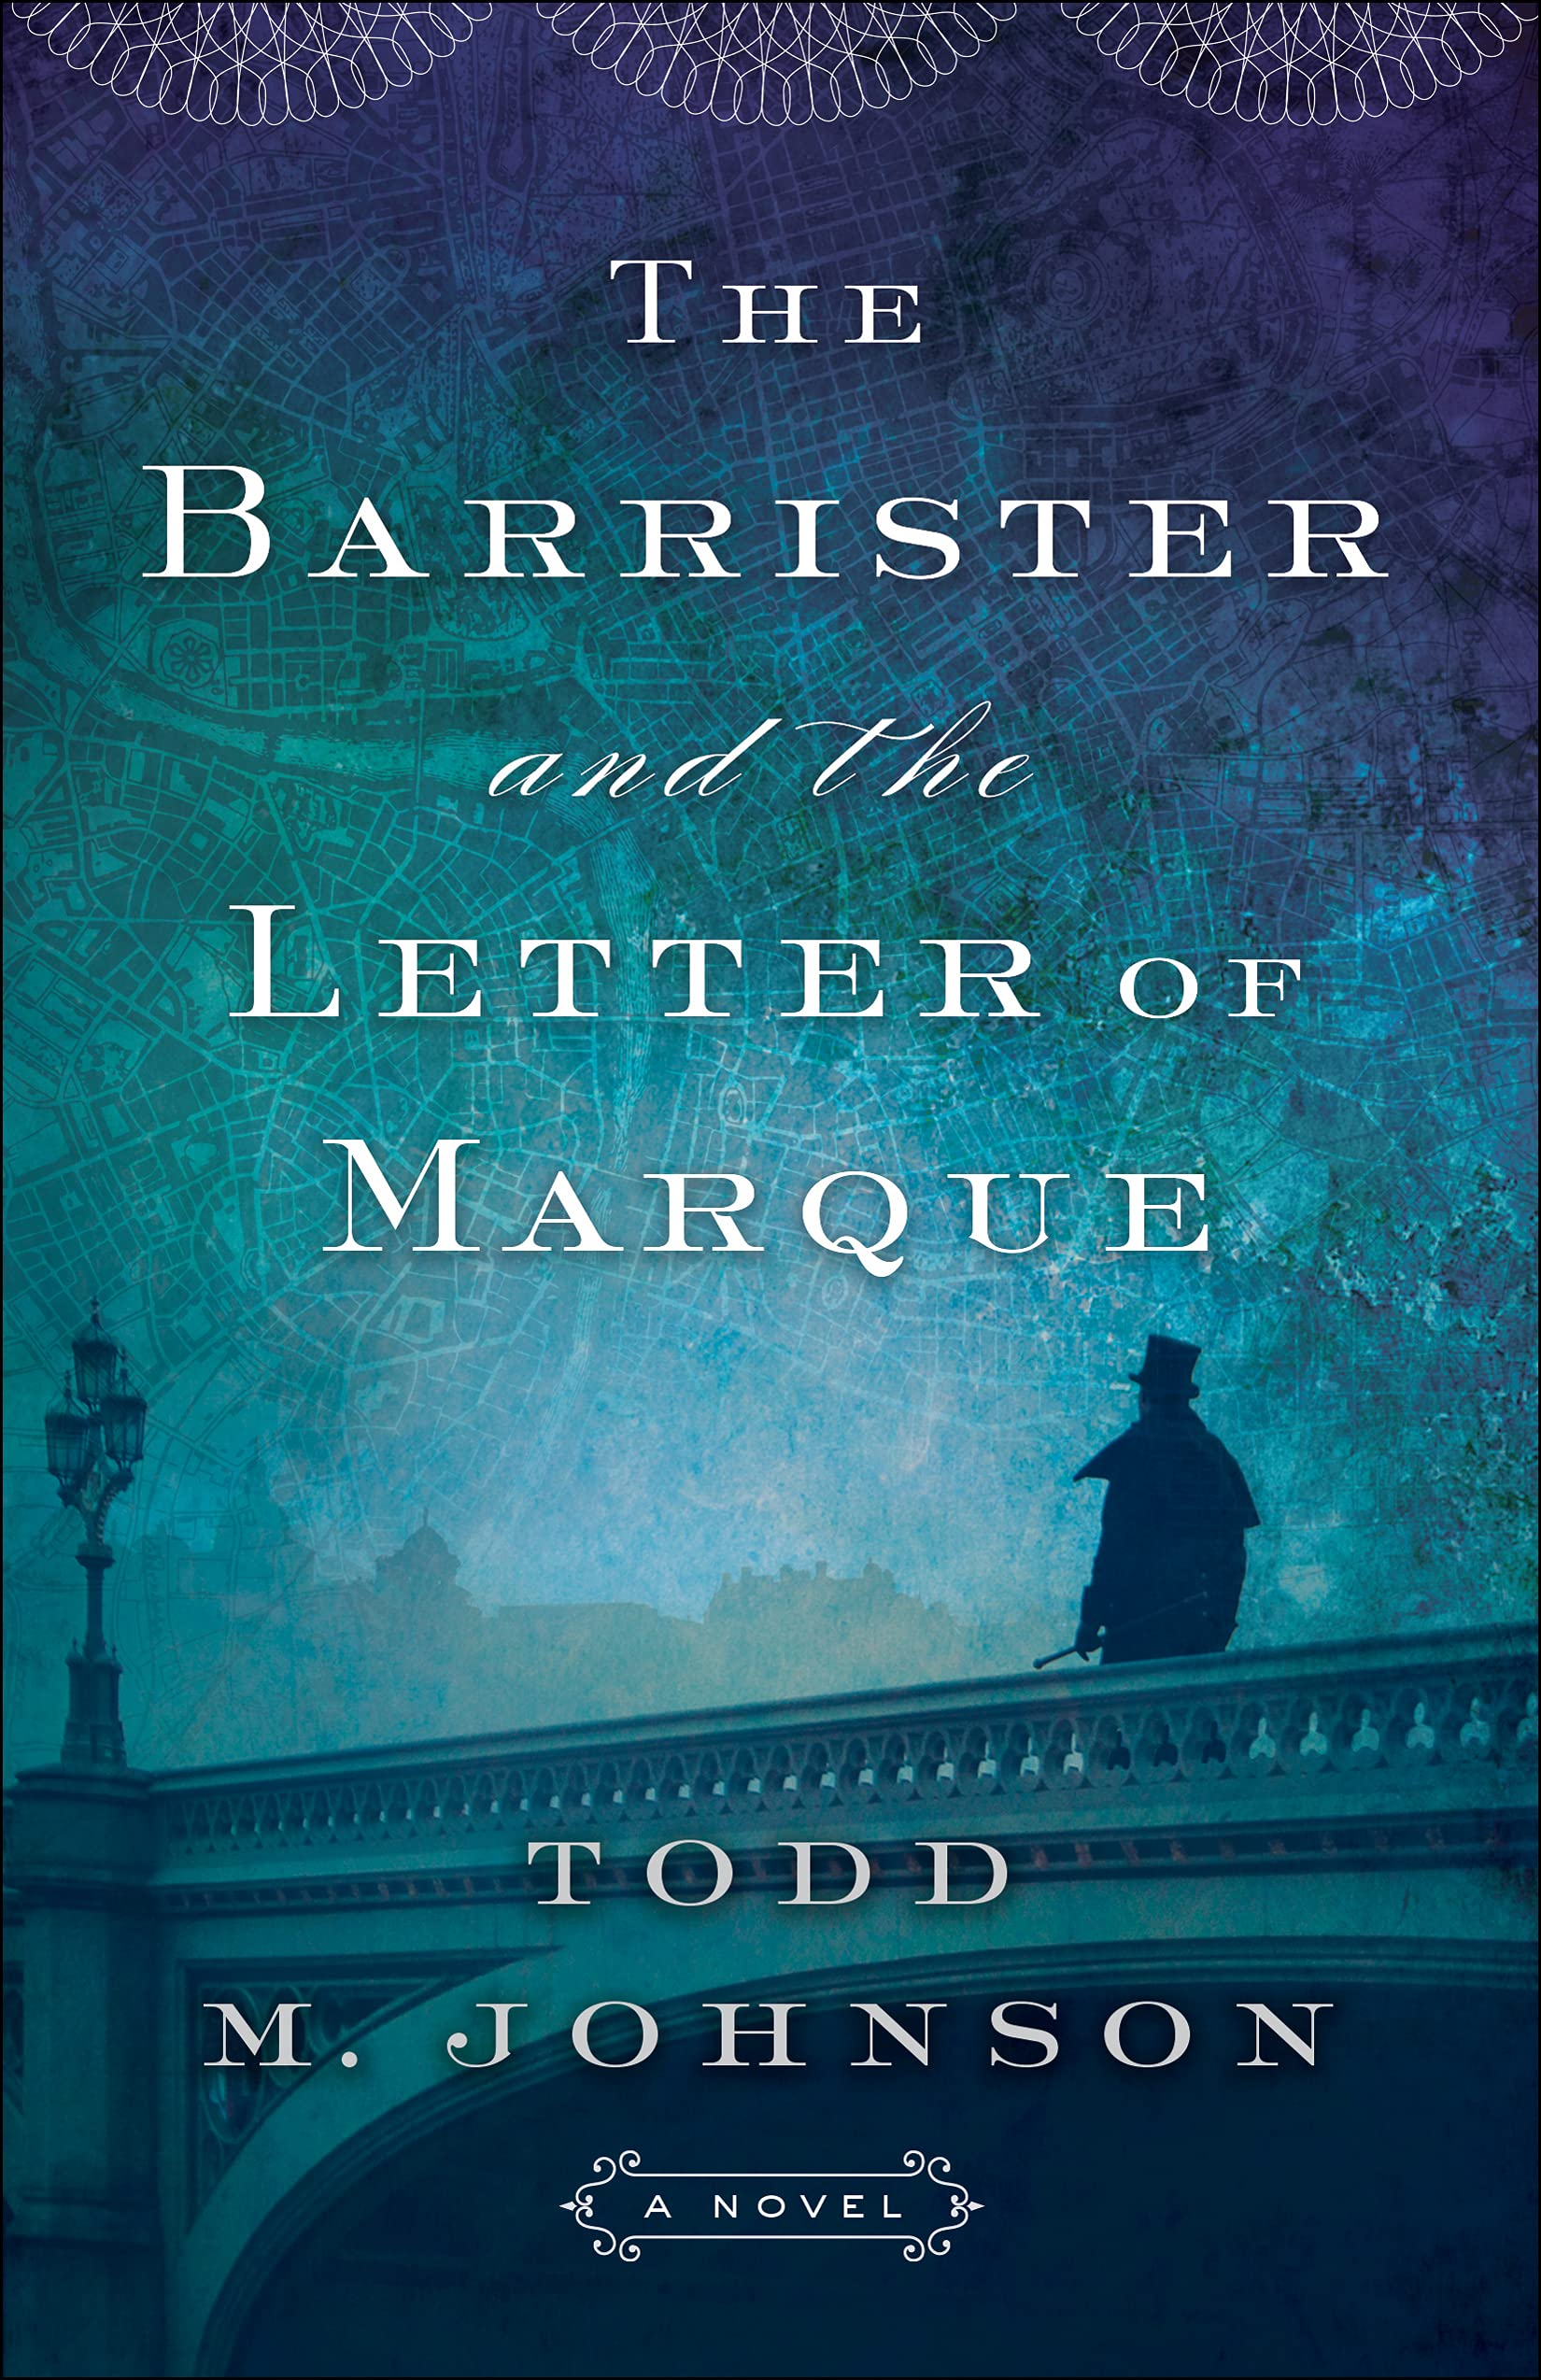 THE BARRISTER AND THE LETTER OF MARQUE - TMJohnson